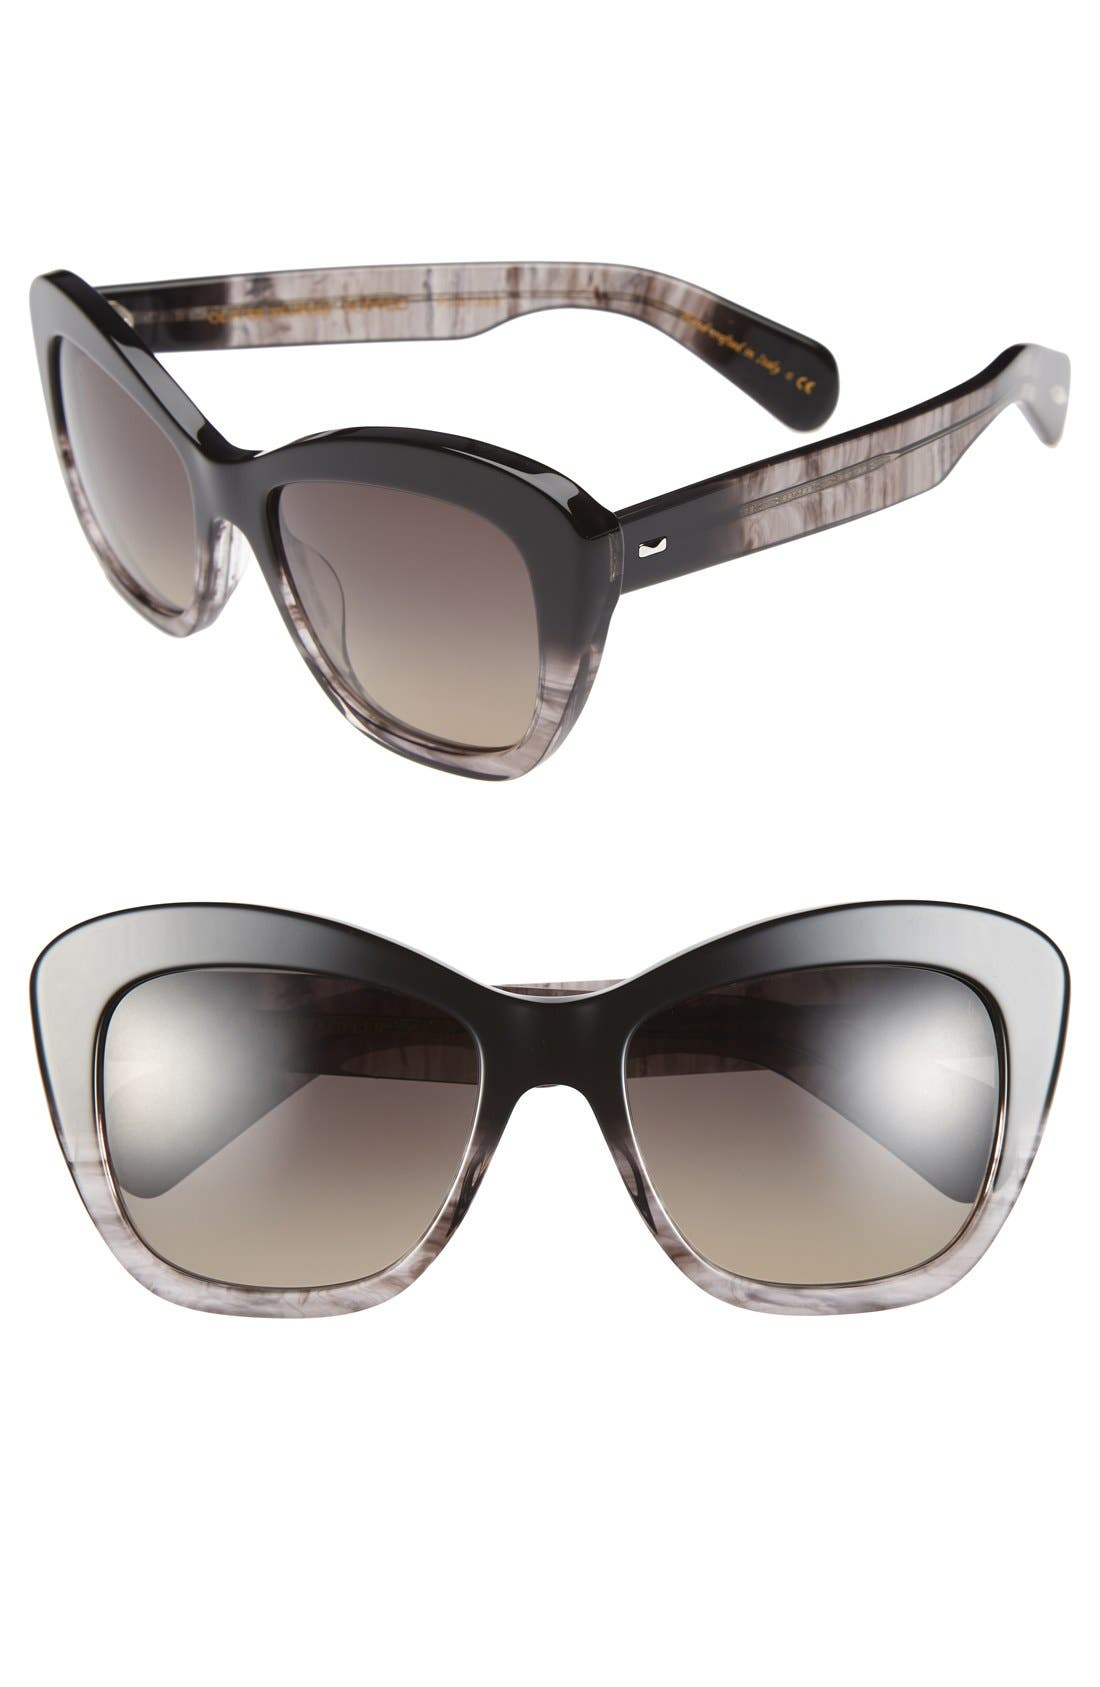 Alternate Image 1 Selected - Oliver Peoples 'Emmy' 55mm Gradient Polarized Sunglasses